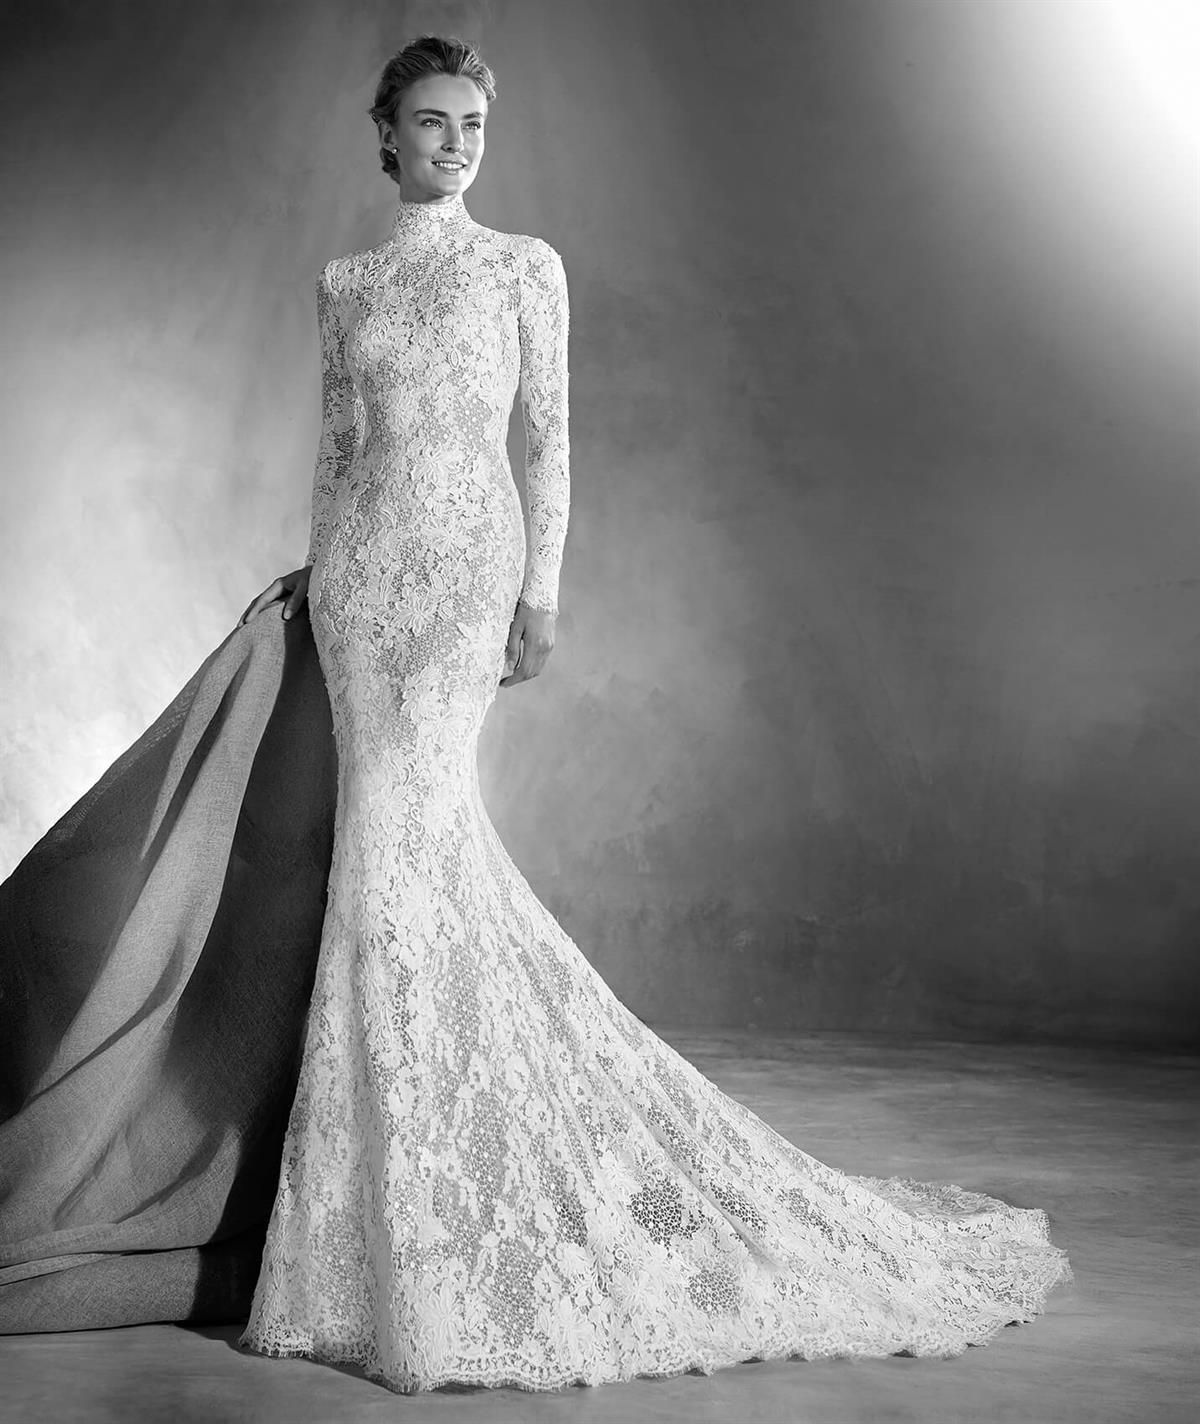 New collection gowns available at Raffaele Ciuca Bridal